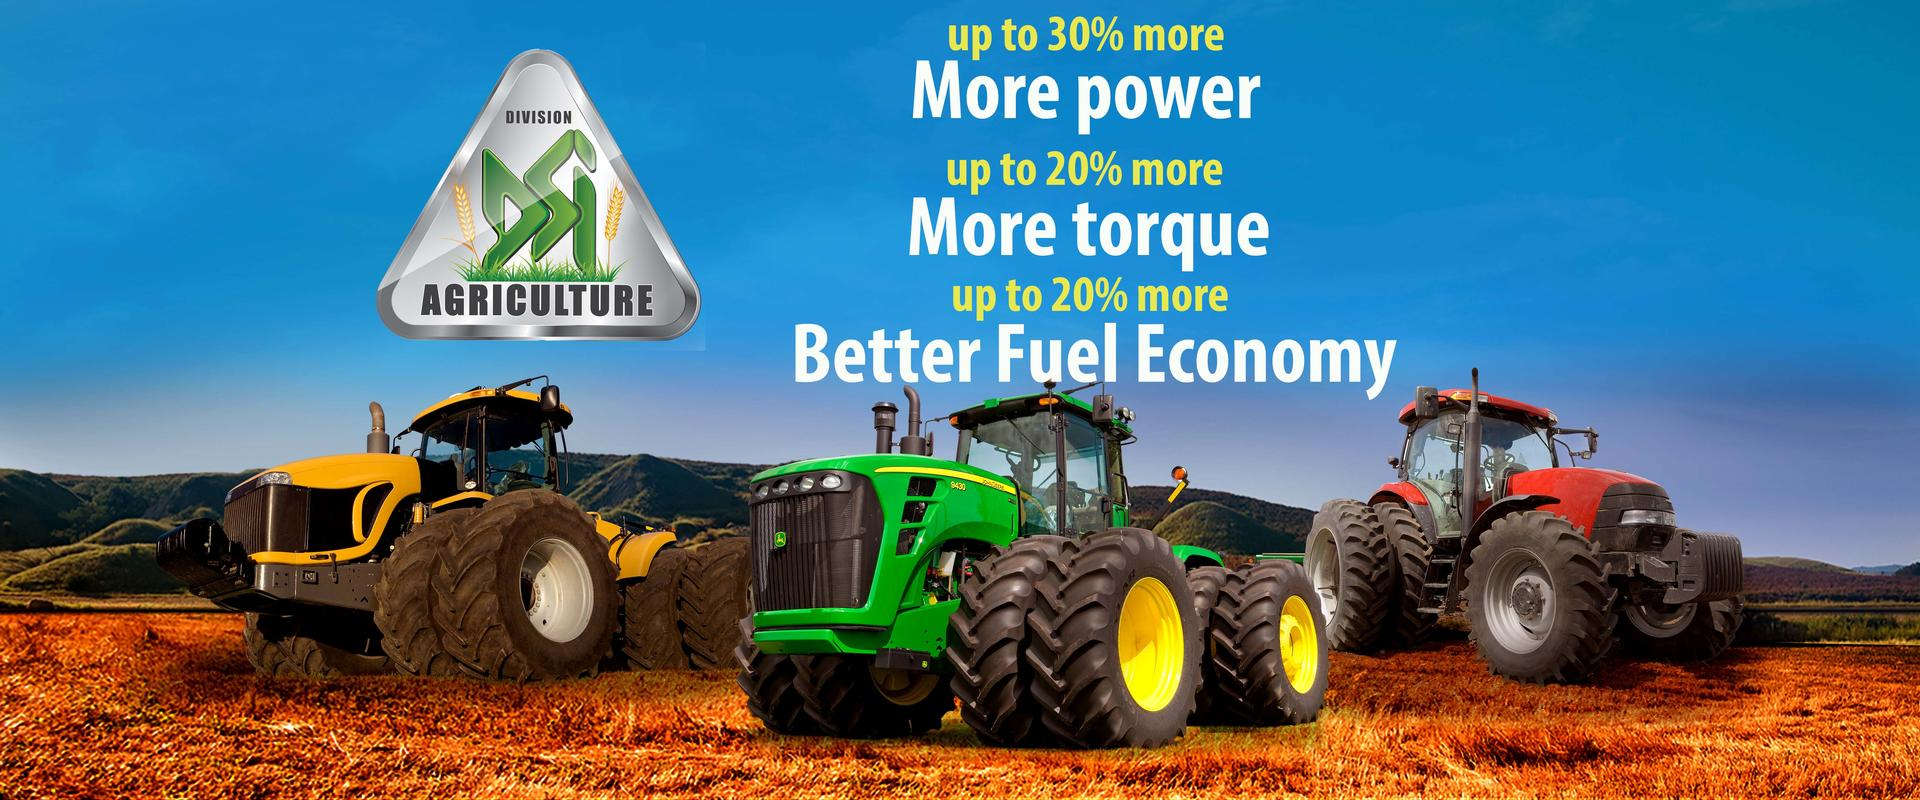 Diesel Spec Agriculture | Tractor and farm machinery tuning